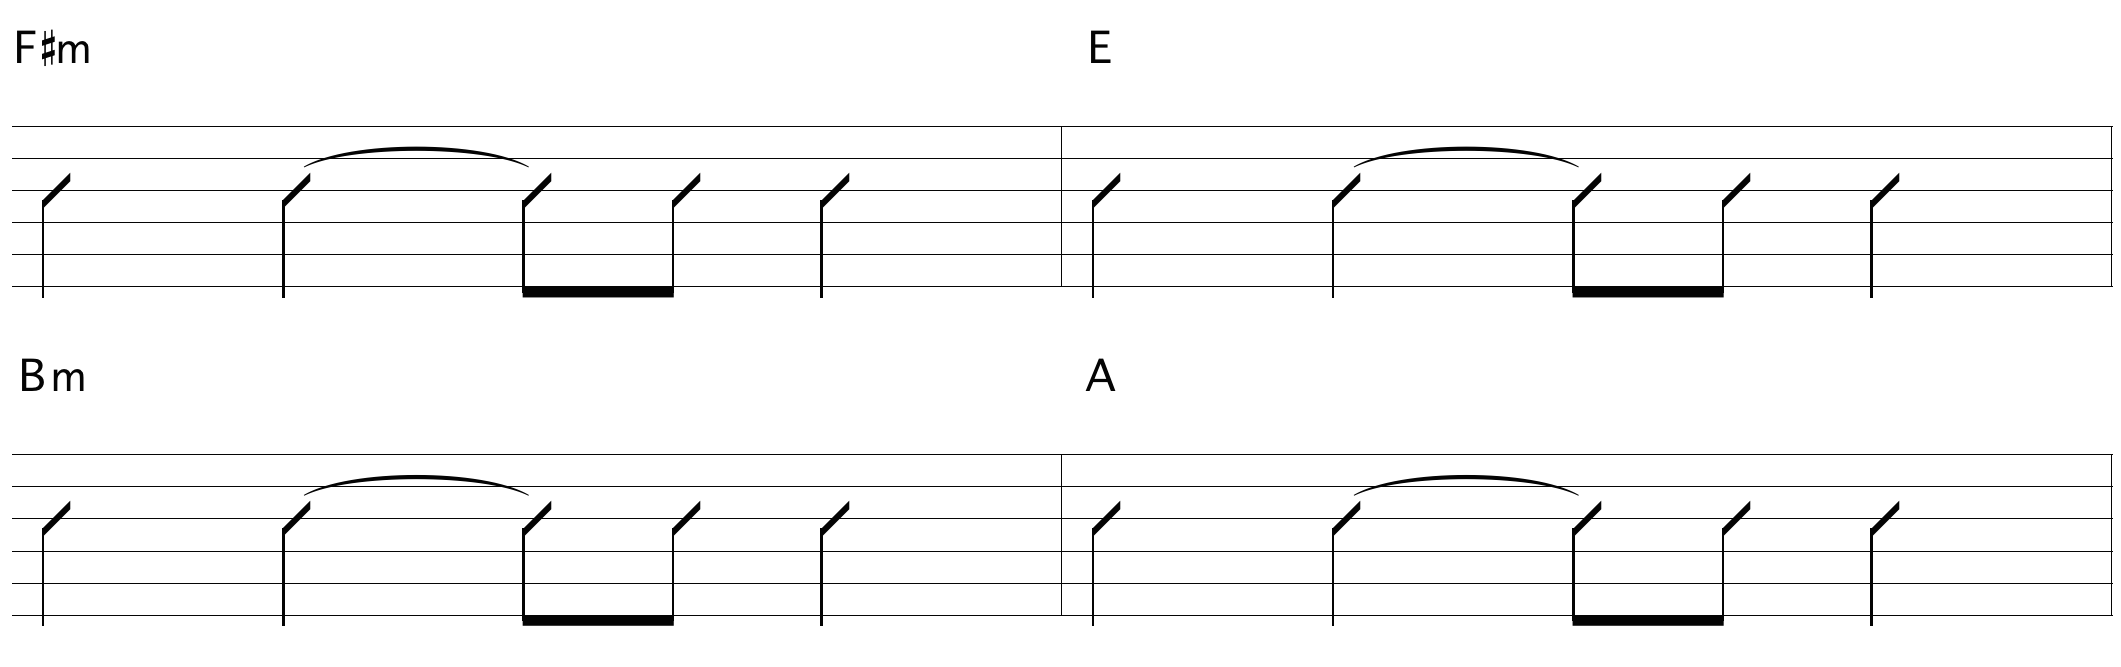 learn-rhythm-guitar_2.png